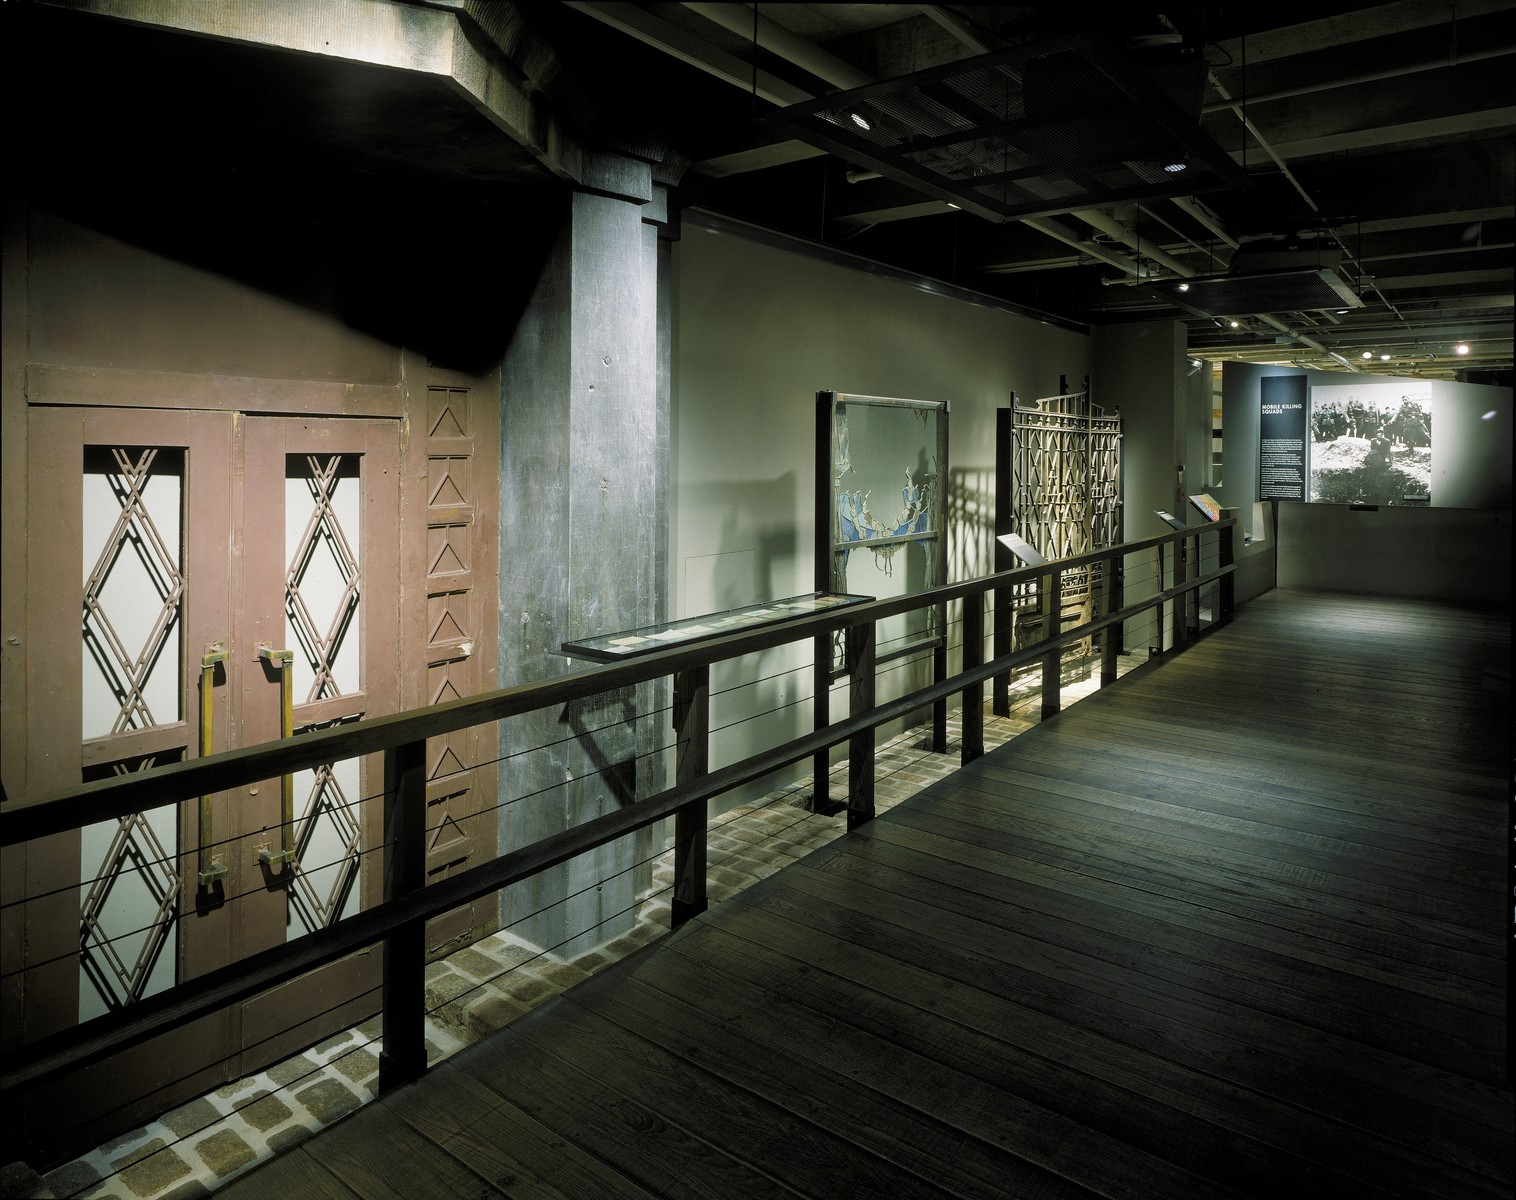 View of the ghetto bridge installation on the third floor of the permanent exhibition at the U.S. Holocaust Memorial Museum.   This view includes the door of the Lodz ghetto hospital, the window of the Kracow synagogue, the gate to the Jewish cemetery in Tarnow, and the mobile killing squad mural.